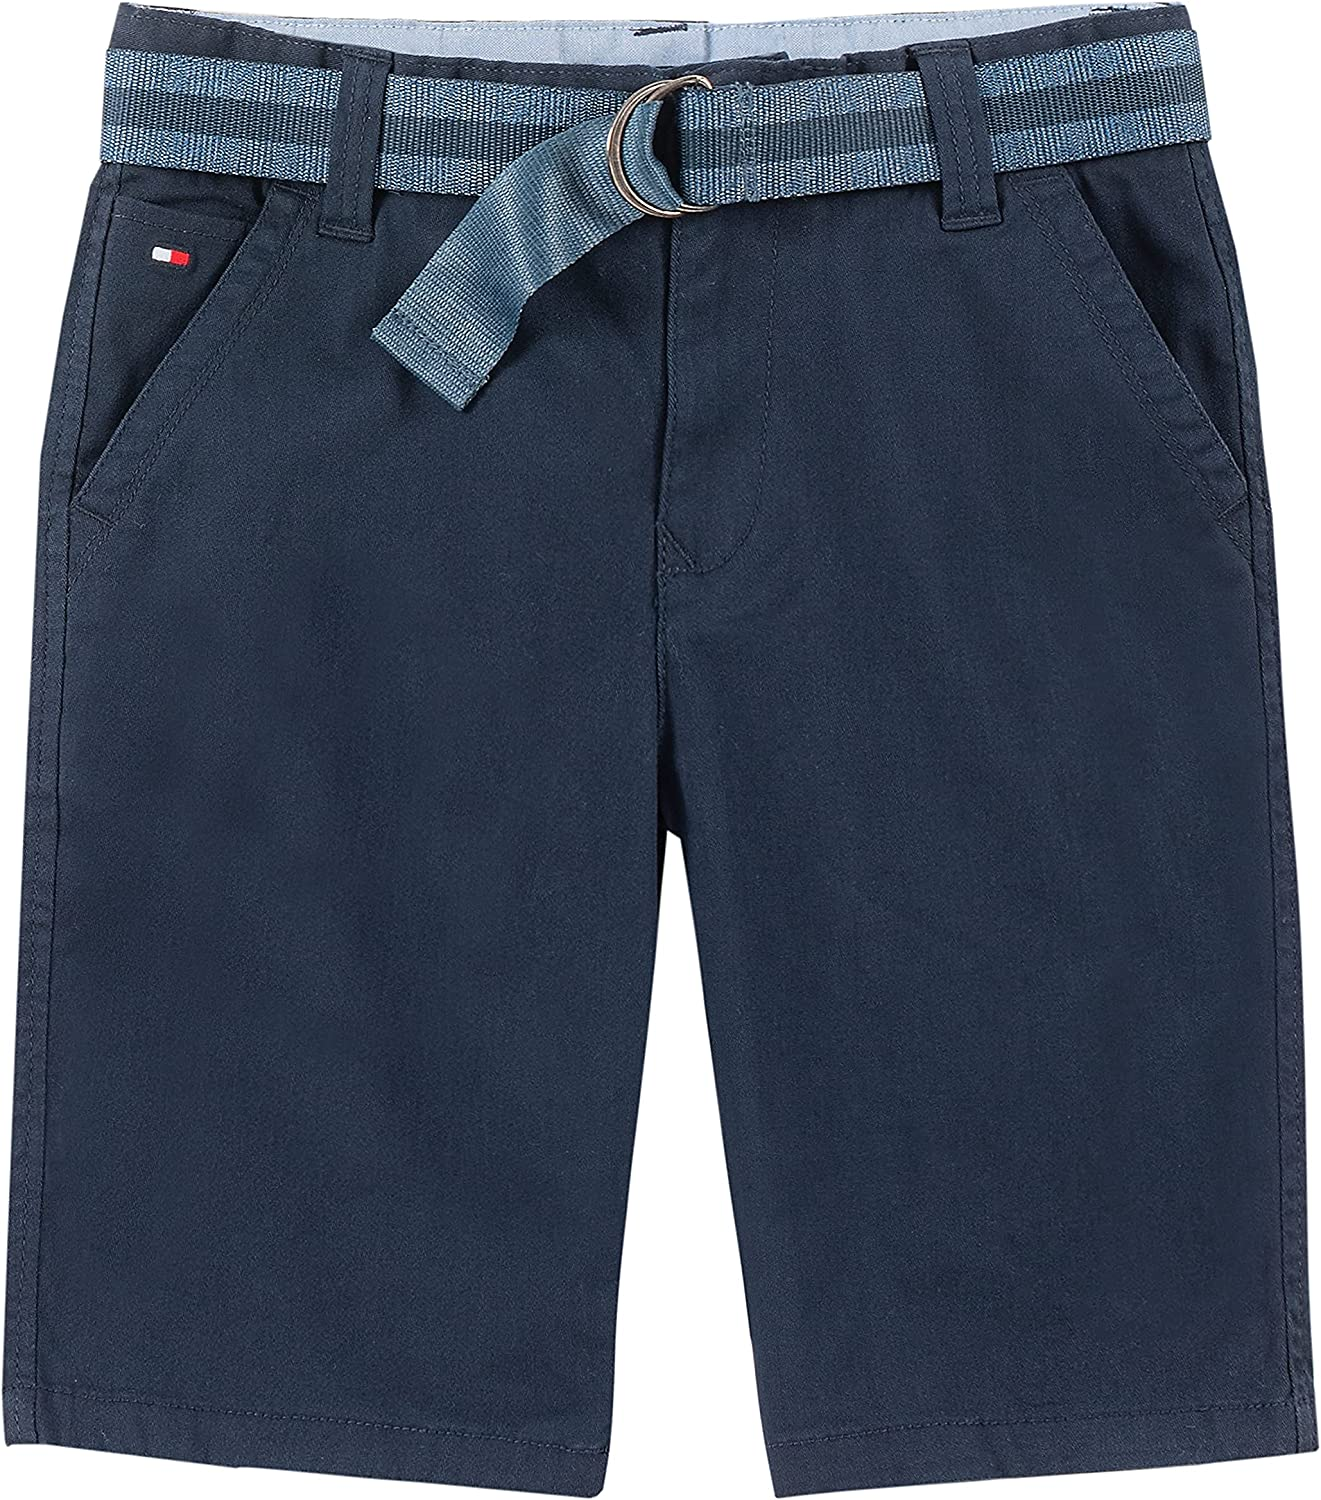 Tommy Hilfiger Boys' Belted Flat-Front Chester Twill Short, 4 Functional Pockets, Zip & Button Closure